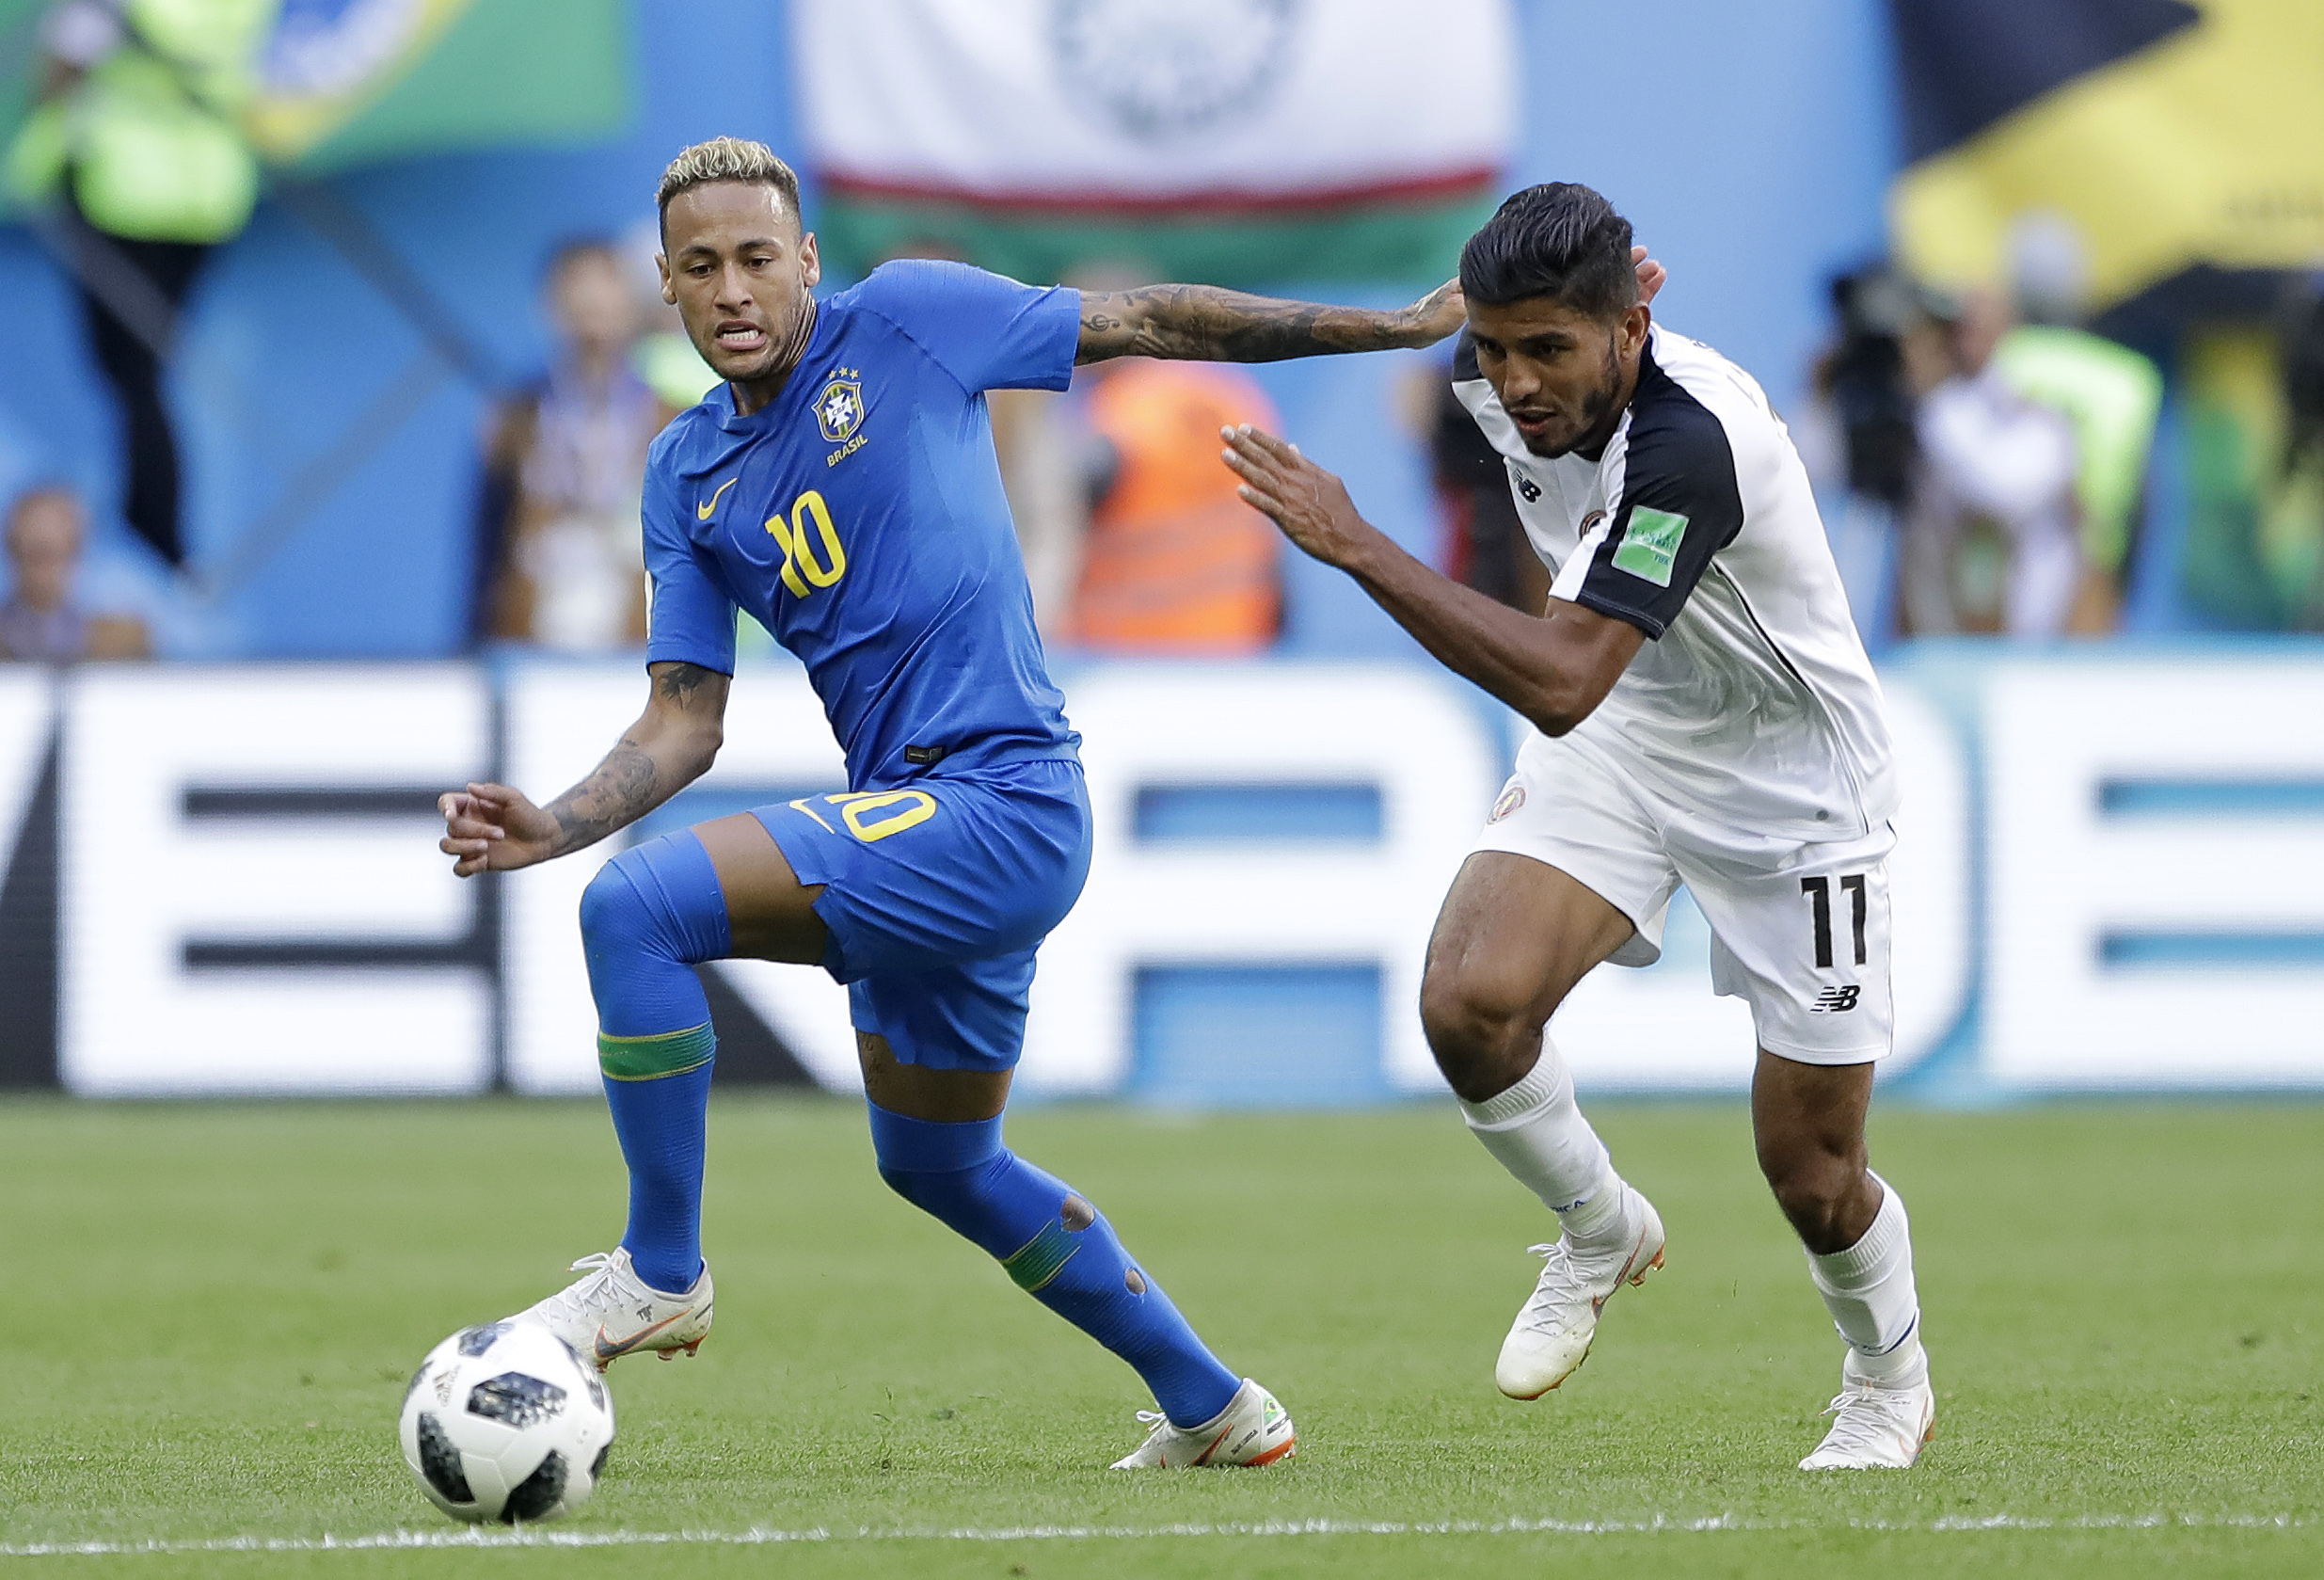 <div class='meta'><div class='origin-logo' data-origin='none'></div><span class='caption-text' data-credit='Andre Penner/AP Photo'>Brazil's Neymar and Costa Rica's Johan Venegas, right, battle for the ball during the group E match between Brazil and Costa Rica in the St. Petersburg Stadium on Friday, June 22.</span></div>